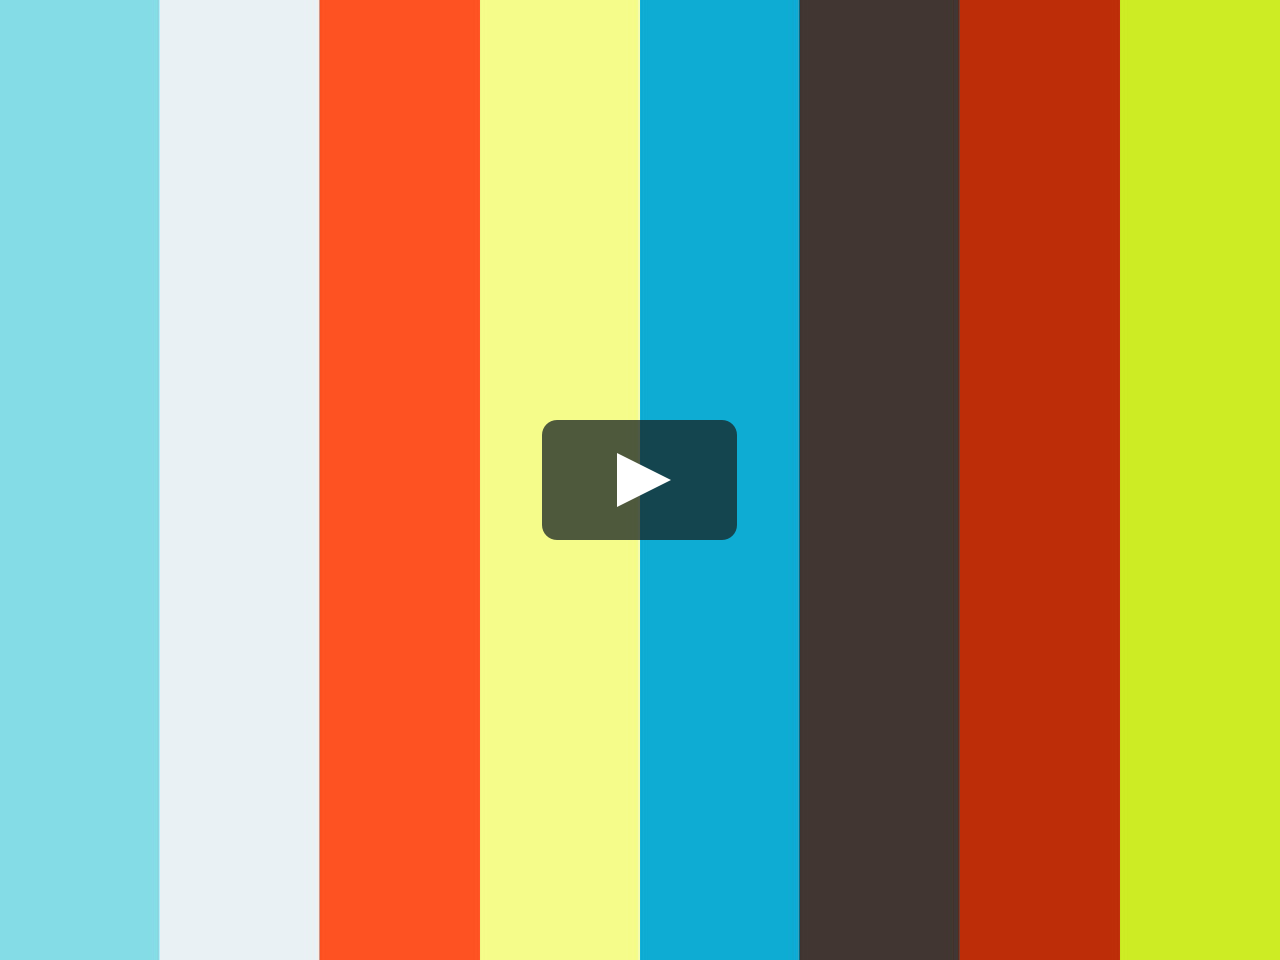 Fish aquarium karachi - Fancy Aquarium City Karachi Fish